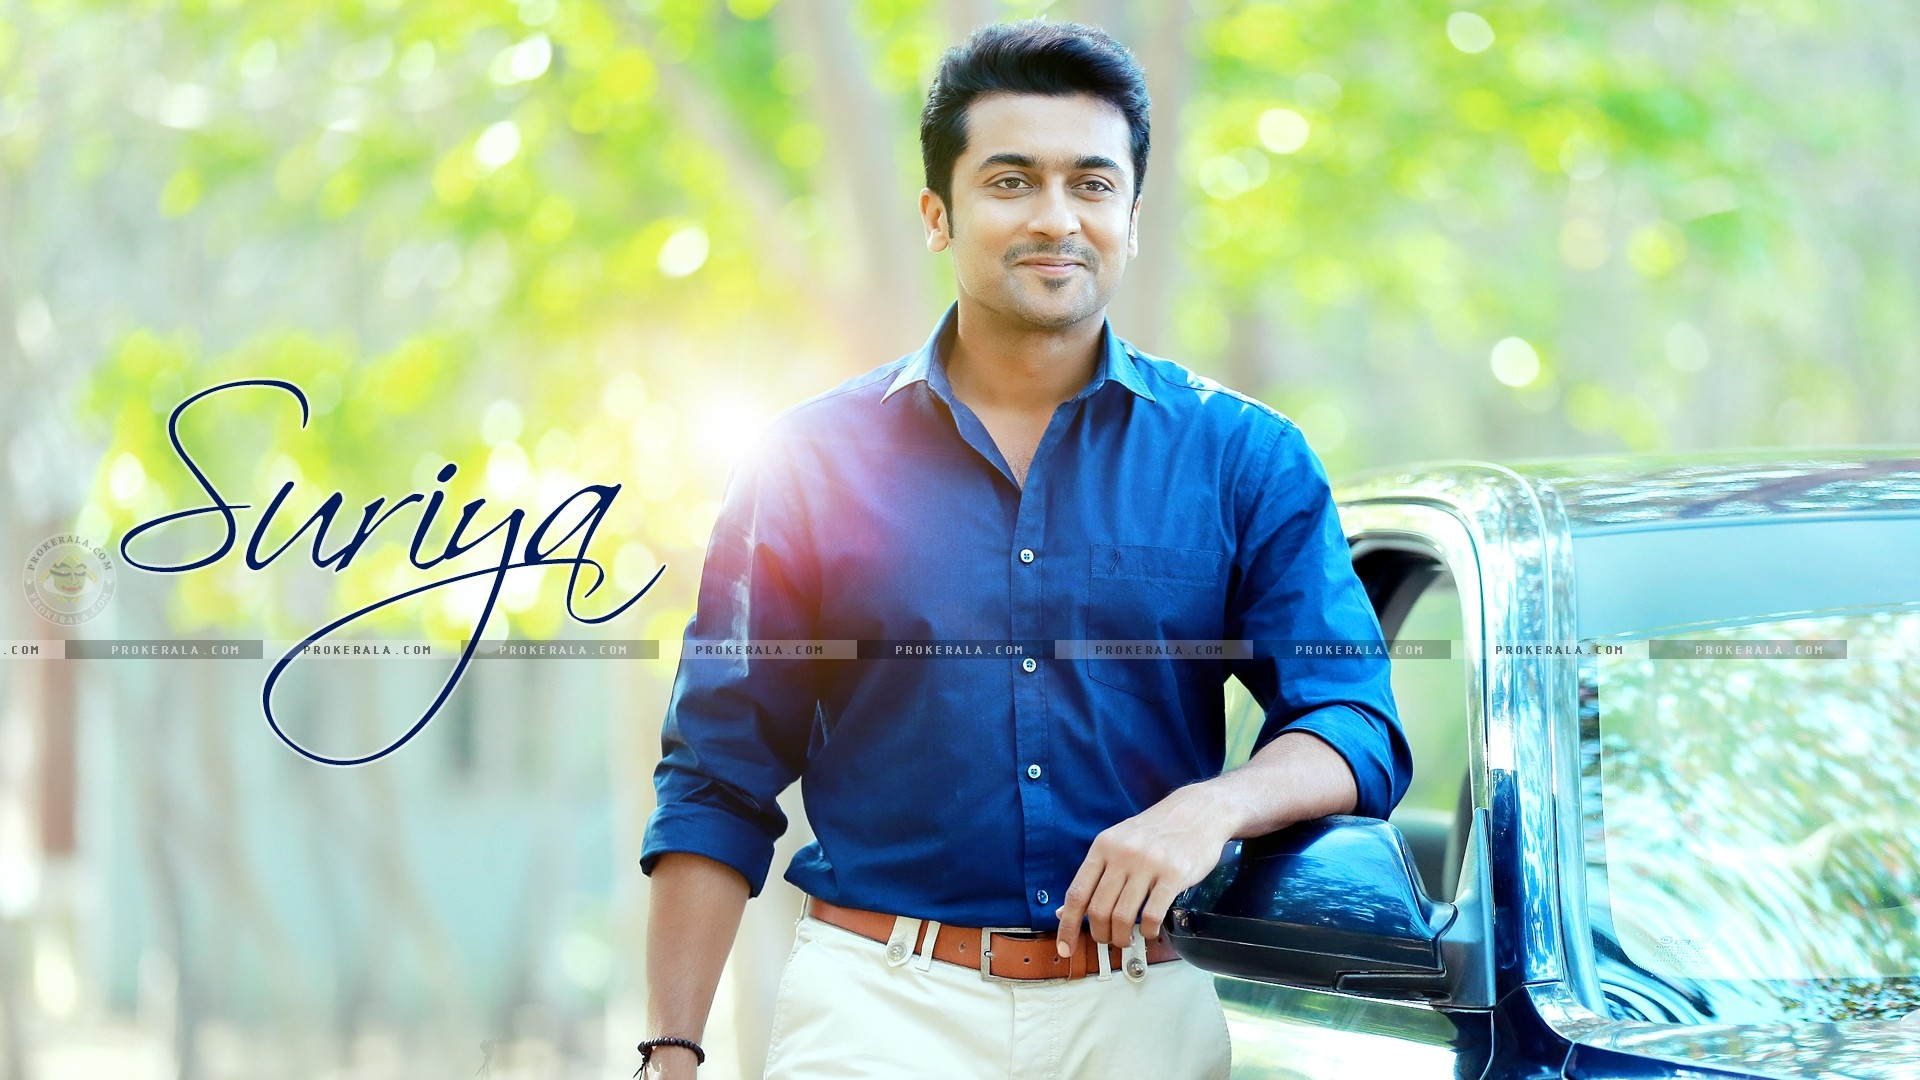 Surya hd wallpaper 2018 76 images 1920x1080 view all wallpapers altavistaventures Image collections